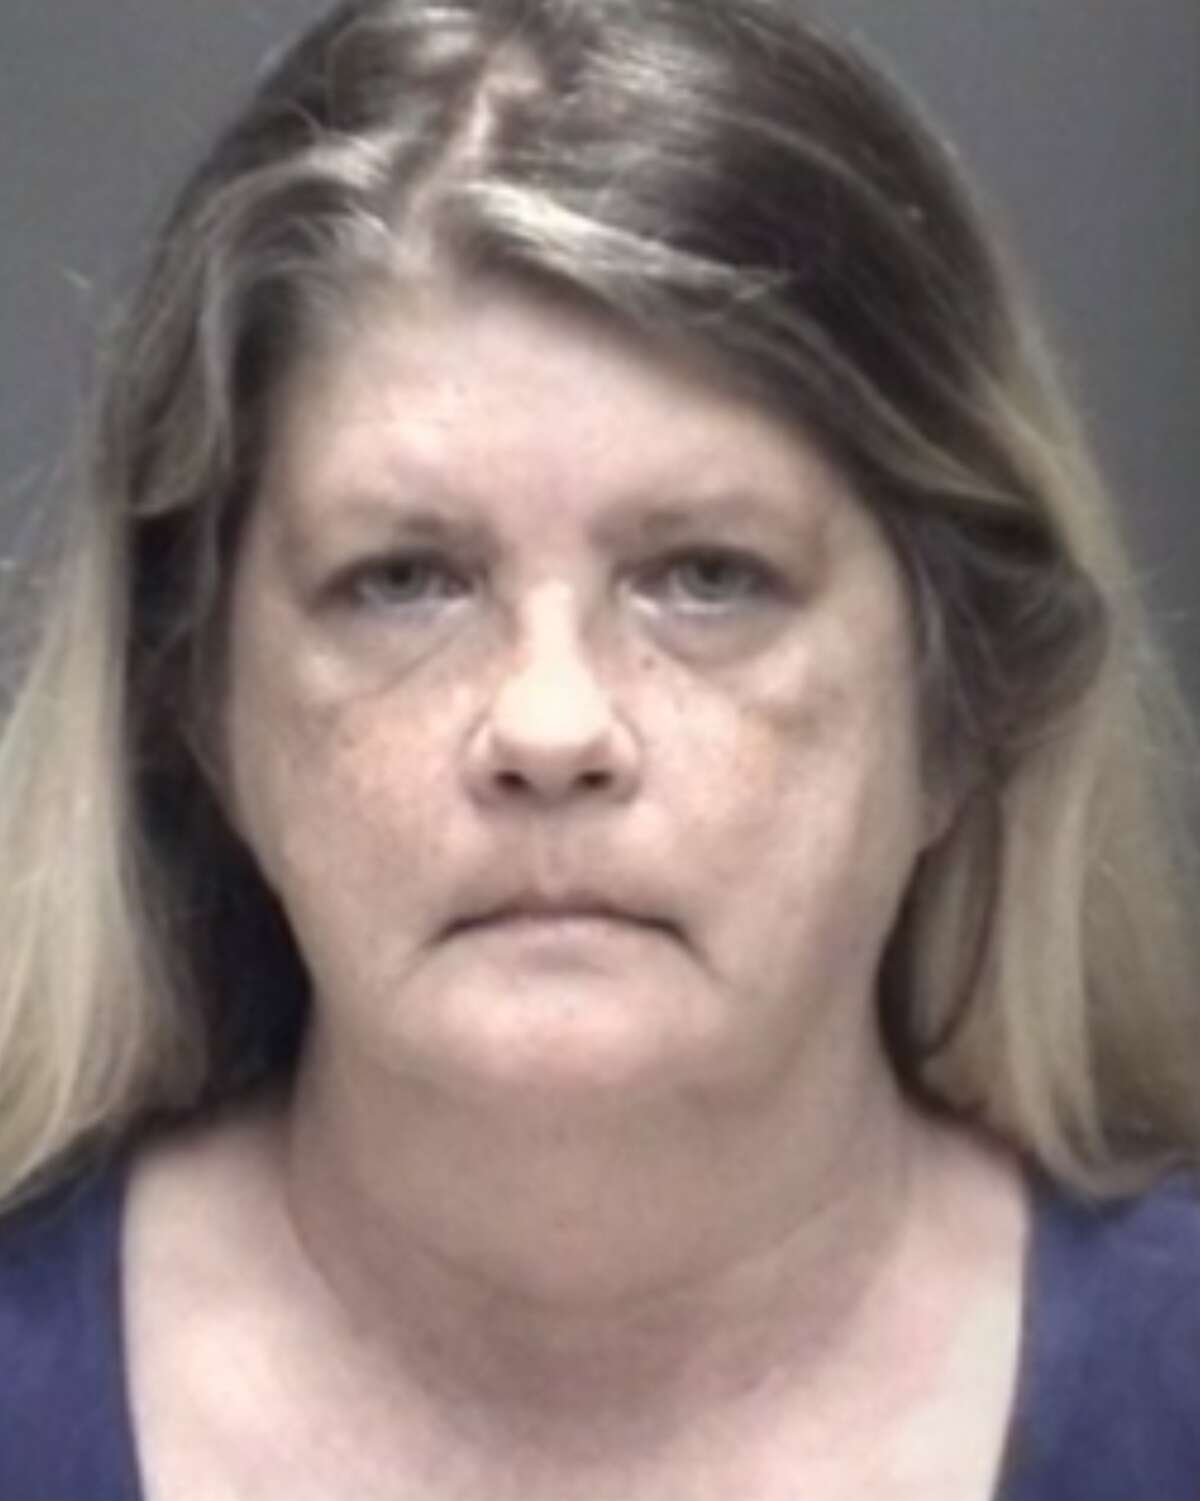 Josephine Goodnight was arrested June 20 and charged with securing a document through deception.